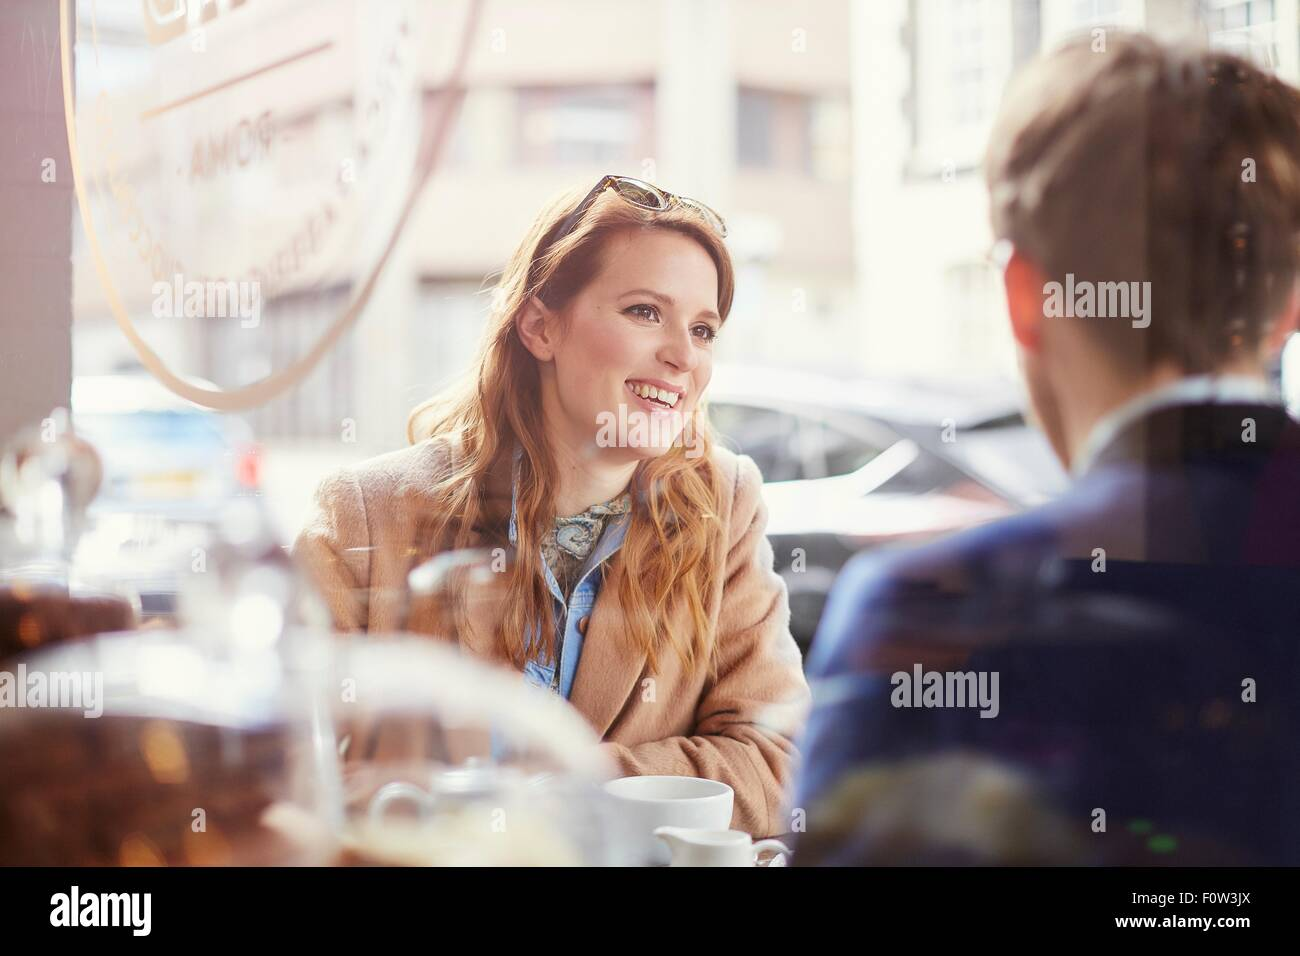 Couple chatting at sidewalk cafe, London, UK Banque D'Images